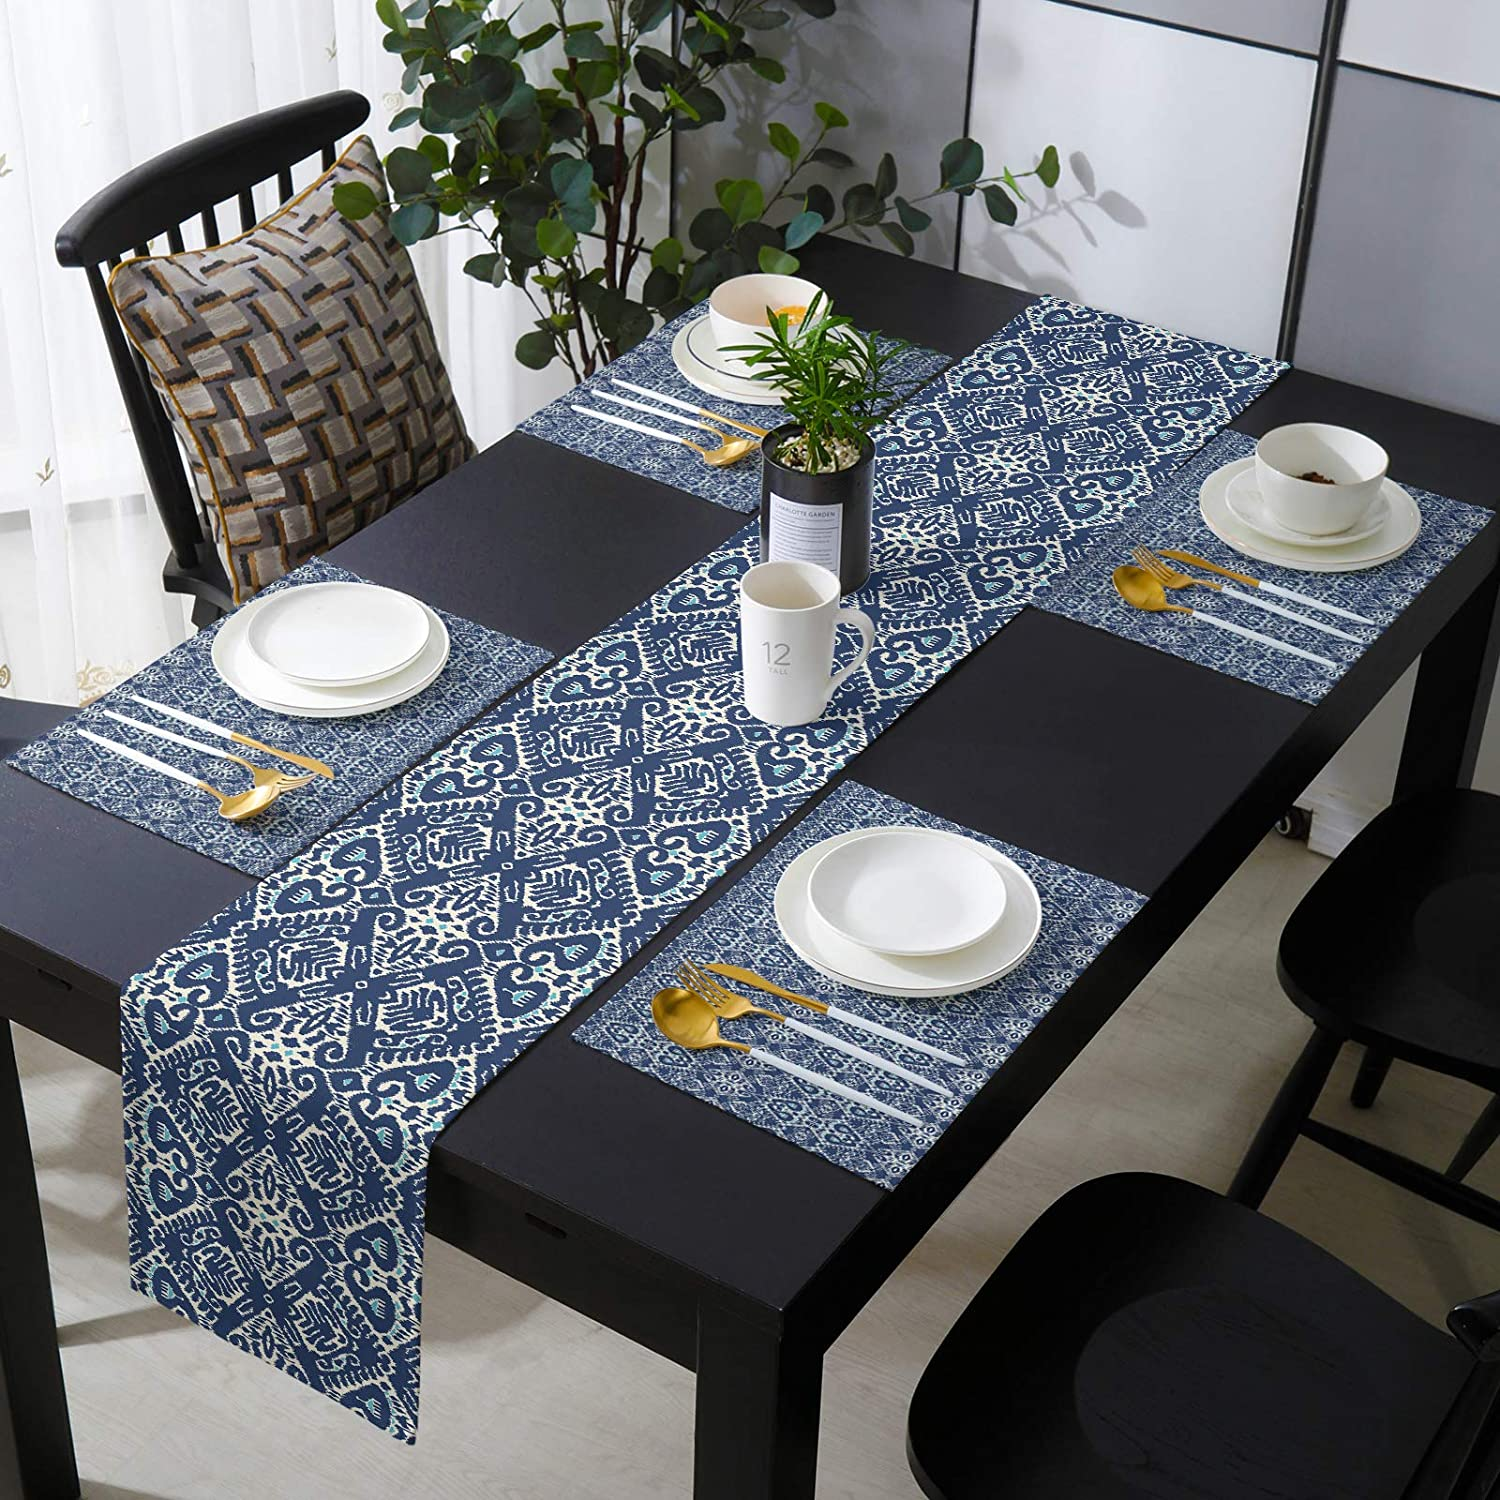 Popular brand Modern Table Decor Runner with Today's only Set Placemats Genre Style